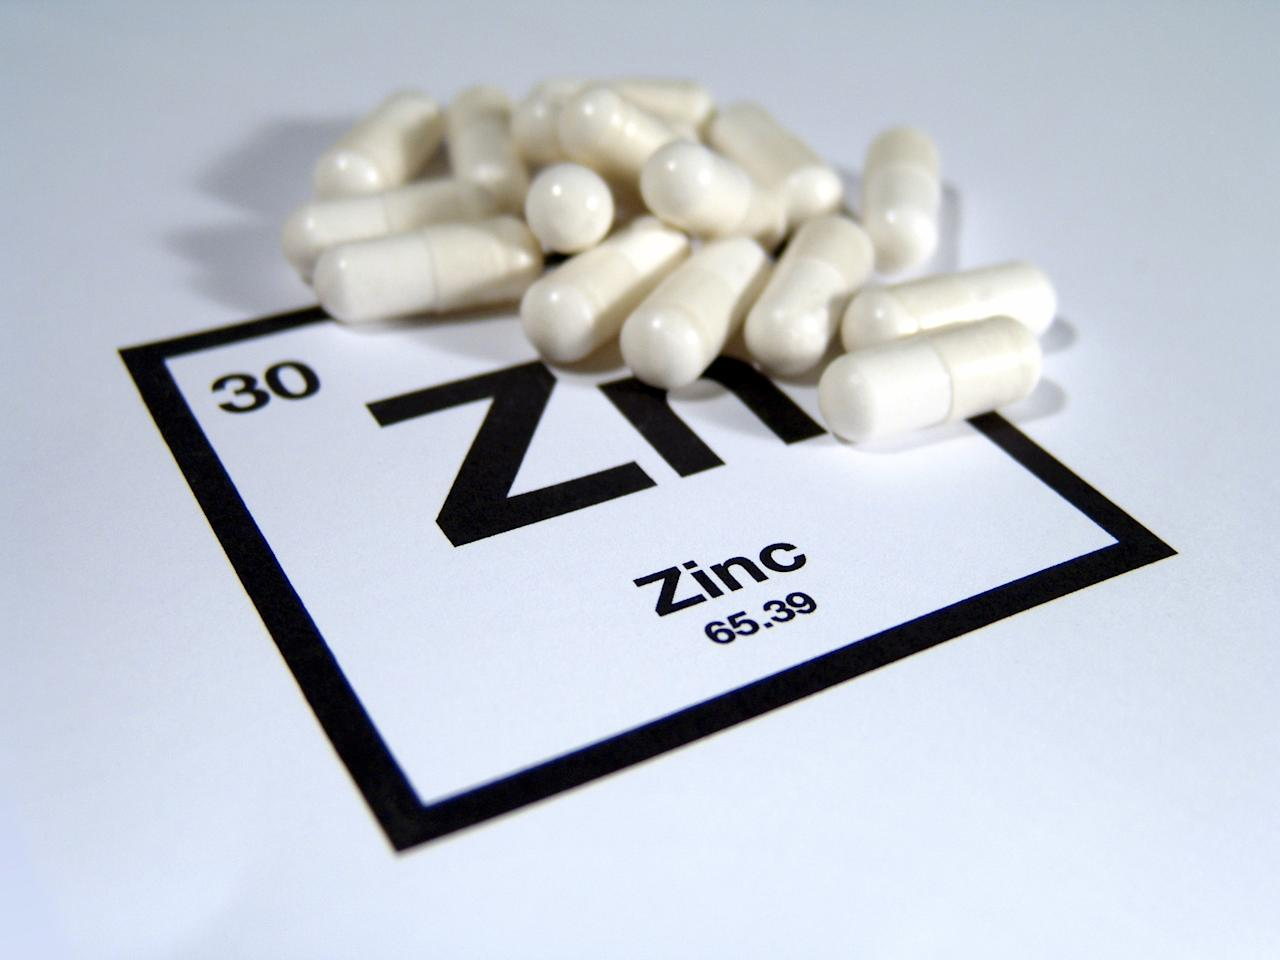 "<p>Does it work? Maybe. Some evidence suggests that zinc lozenges (like <a href=""http://linksynergy.walmart.com/deeplink?id=93xLBvPhAeE&mid=2149&murl=https%3A%2F%2Fwww.walmart.com%2Fip%2FZicam-Ultra-Cold-Remedy-RapidMelts-Orange-Cream-Flavor-18-Tablets%2F16940665&u1=HT%2C20Over-the-CounterColdRemedies%253AWhatWorks%252CWhatDoesn%2527t%2Ctiadmin%2CCOL%2CGAL%2C223089%2C201909%2CI"" target=""_blank"">Zicam</a> and <a href=""http://linksynergy.walmart.com/deeplink?id=93xLBvPhAeE&mid=2149&murl=https%3A%2F%2Fwww.walmart.com%2Fip%2FCold-Eeze-Zinc-Gluconate-Glycine-Cherry-Lozenges-Homeopathic-18-count%2F38249964&u1=HT%2C20Over-the-CounterColdRemedies%253AWhatWorks%252CWhatDoesn%2527t%2Ctiadmin%2CCOL%2CGAL%2C223089%2C201909%2CI"" target=""_blank"">Cold-Eeze</a>) may ease symptoms and shorten the duration of the <a href=""https://www.health.com/health/cold-flu-sinus"">common cold</a>, but most studies are small and don't provide ""robust"" evidence of benefit, says Joy P. Alonzo, PharmD, assistant professor of pharmacy practice at Texas A&M Health Science Center Irma Lerma Rangel College of Pharmacy. ""I don't recommend it,"" she says.</p> <p>And there may be a drawback to some forms of zinc: In 2009, taking zinc nasal products was linked to a permanent loss of taste and smell in some people. The FDA has warned consumers not to use three zinc-based nasal products, but that warning doesn't extend to oral products, like zinc tablets or lozenges.</p> <p><strong>RELATED: <a href=""https://www.health.com/cold-flu-sinus/4-things-you-should-know-about-zinc-and-the-common-cold"">4 Things You Should Know About Zinc and the Common Cold</a></strong></p>"